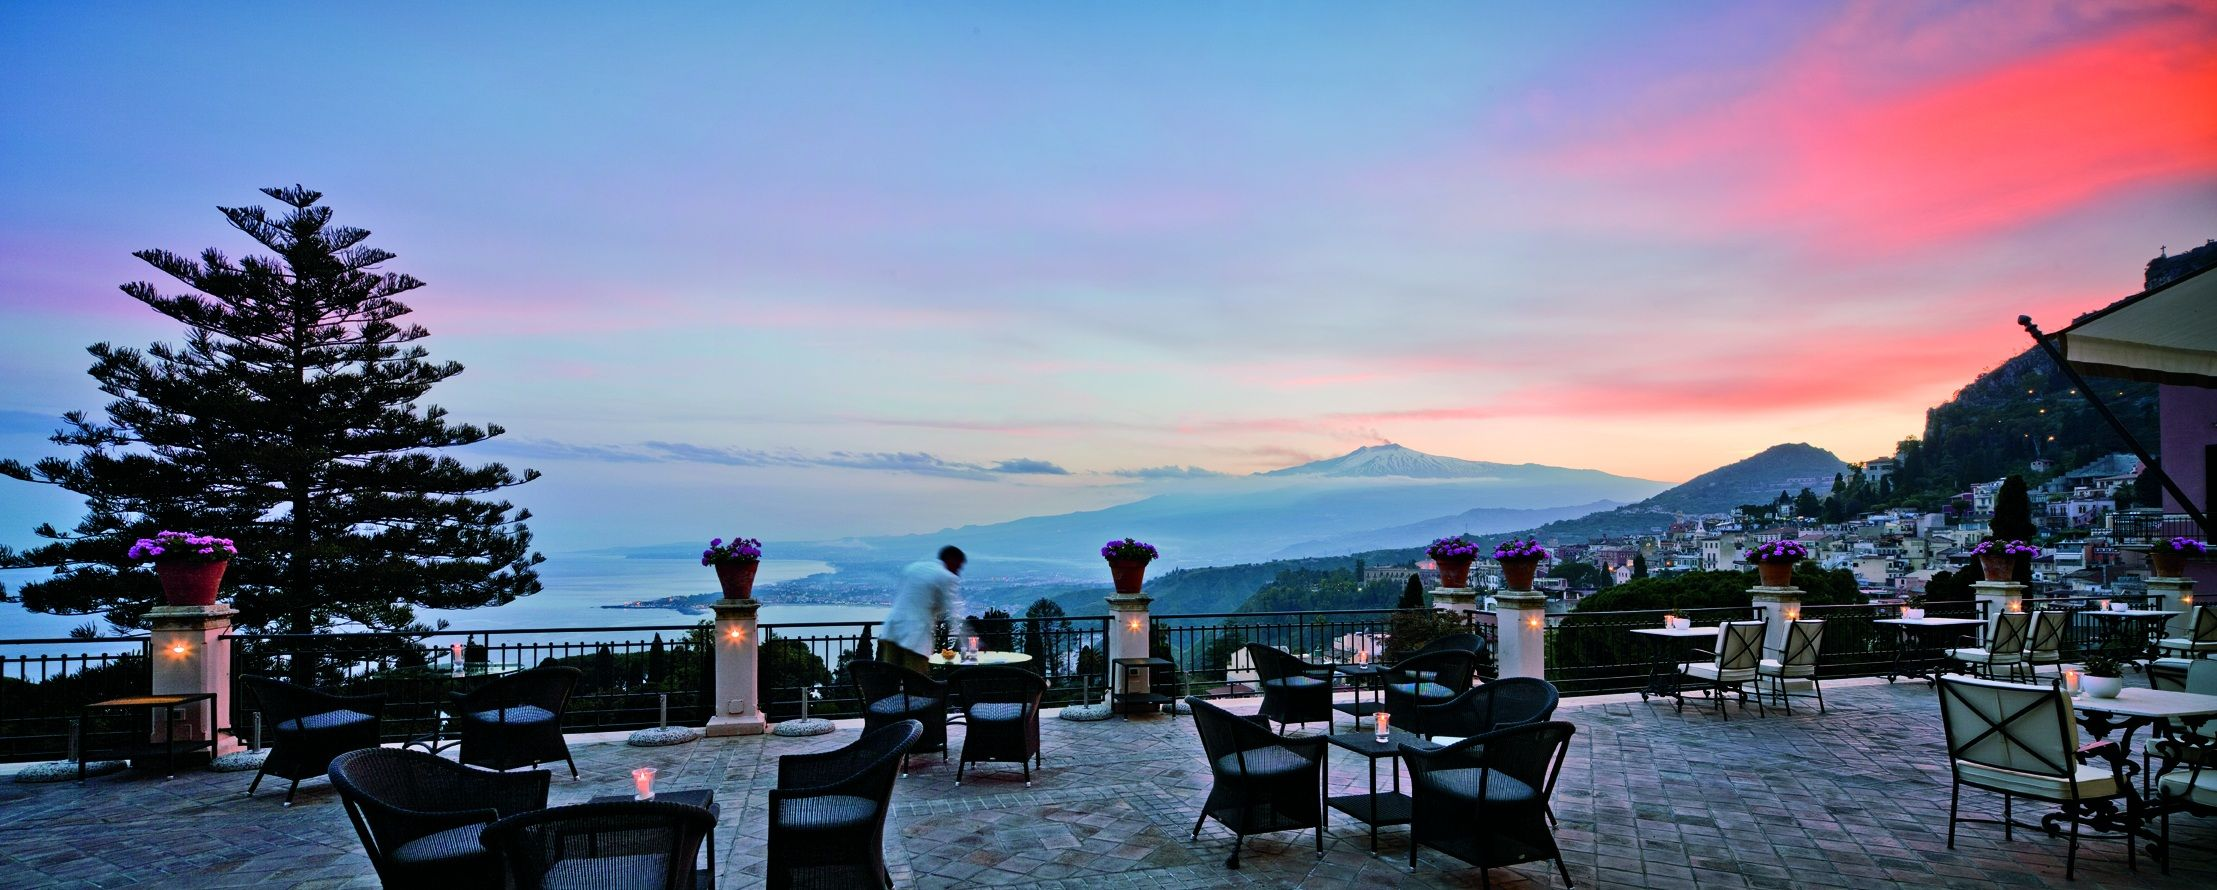 Grand Hotel Timeo Sicily High In The Hills Of Taormina With Views S Volcanic Coastline And Mount Etna Is Surrounded By Ancient